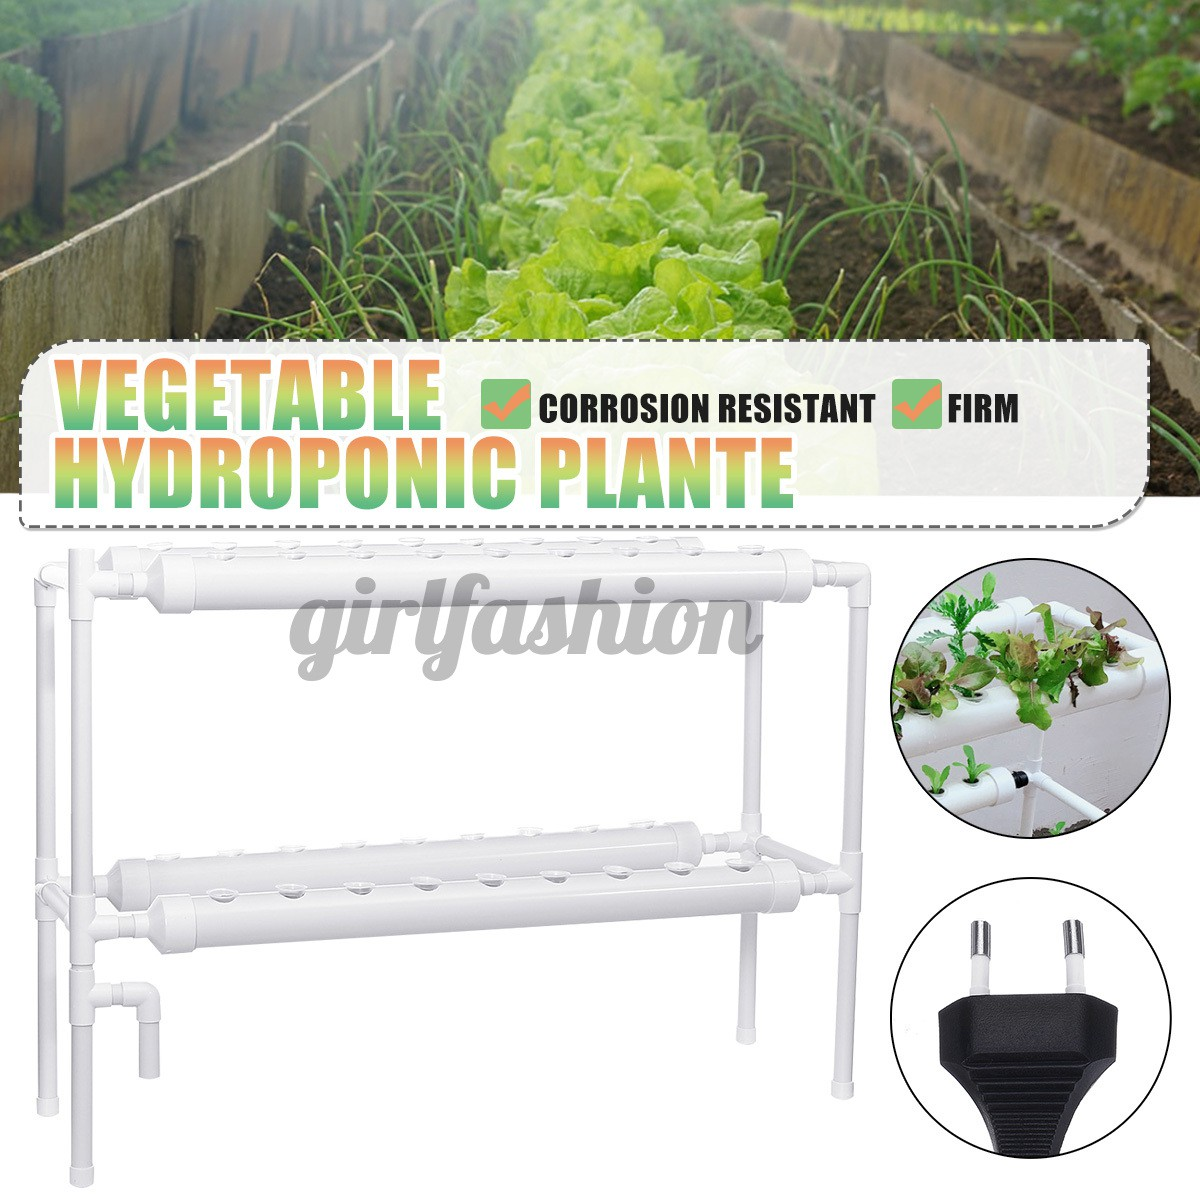 36 Site 4 Pipe Hydroponic Plant Grow Vegetable Water Tool Kit Garden System  | Shopee Singapore